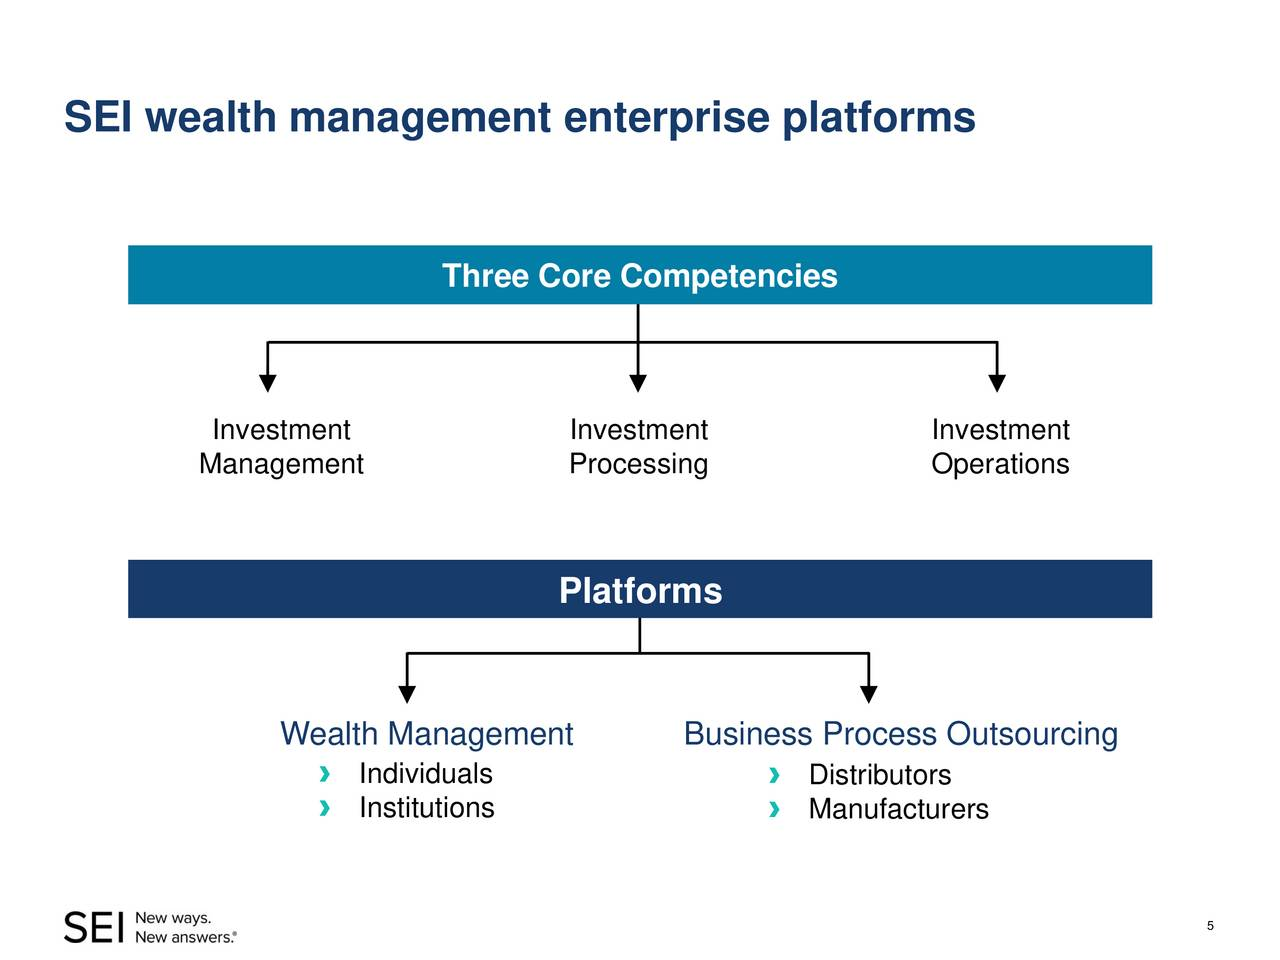 Three investment platforms global